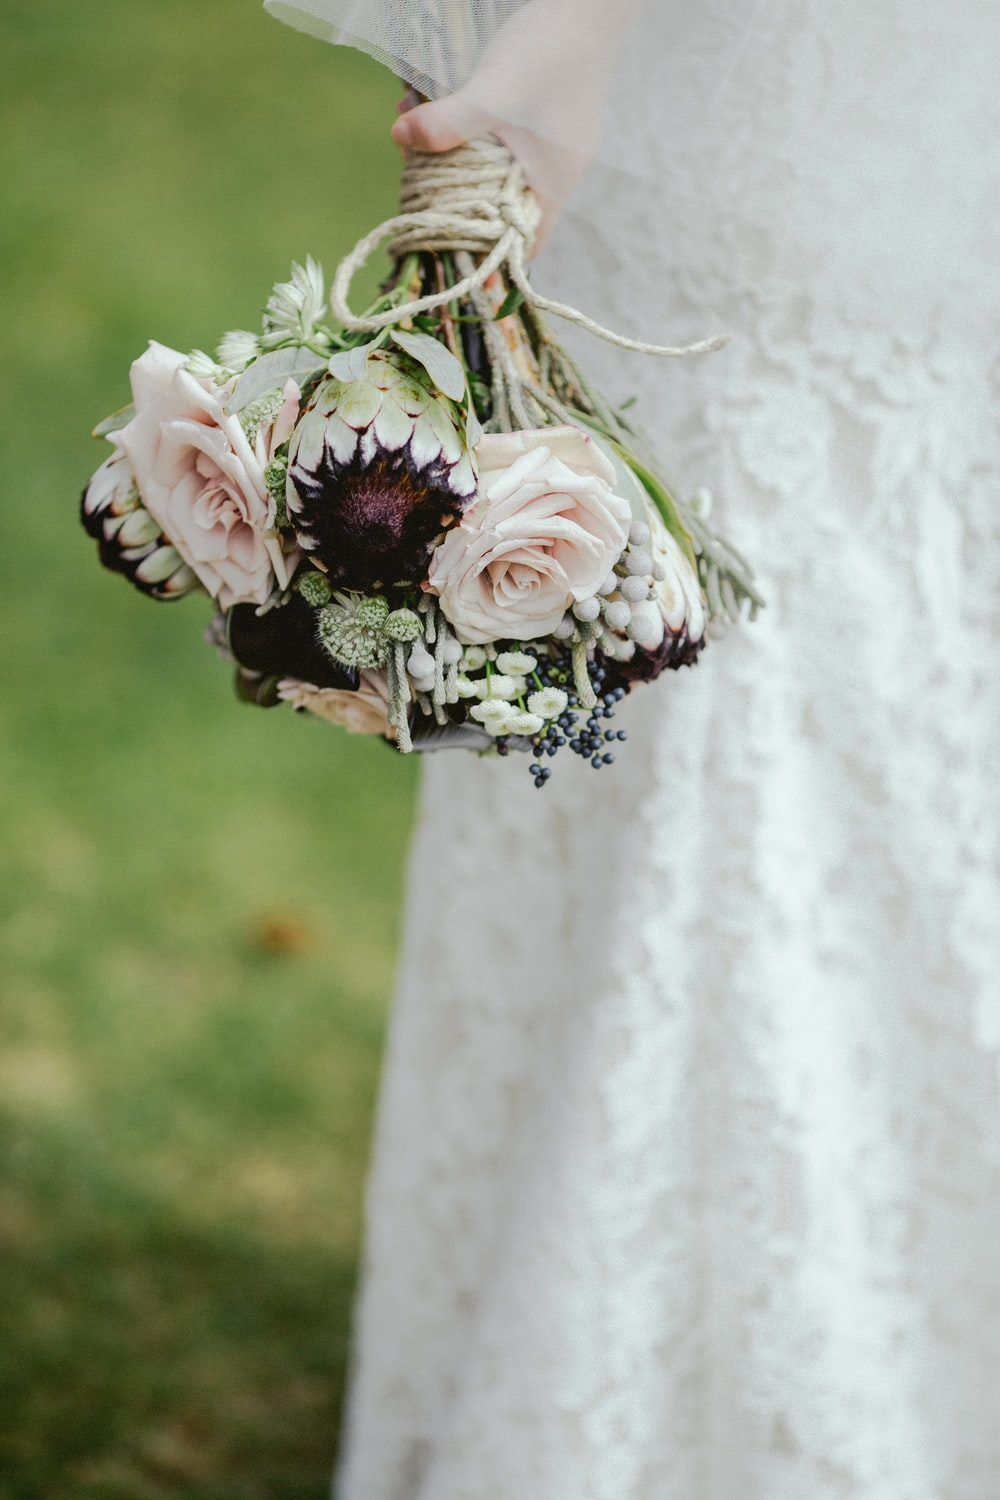 Sarah photo by tom pumford tompumford on unsplash selective focus photography of white and purple petaled flower bouquet izmirmasajfo